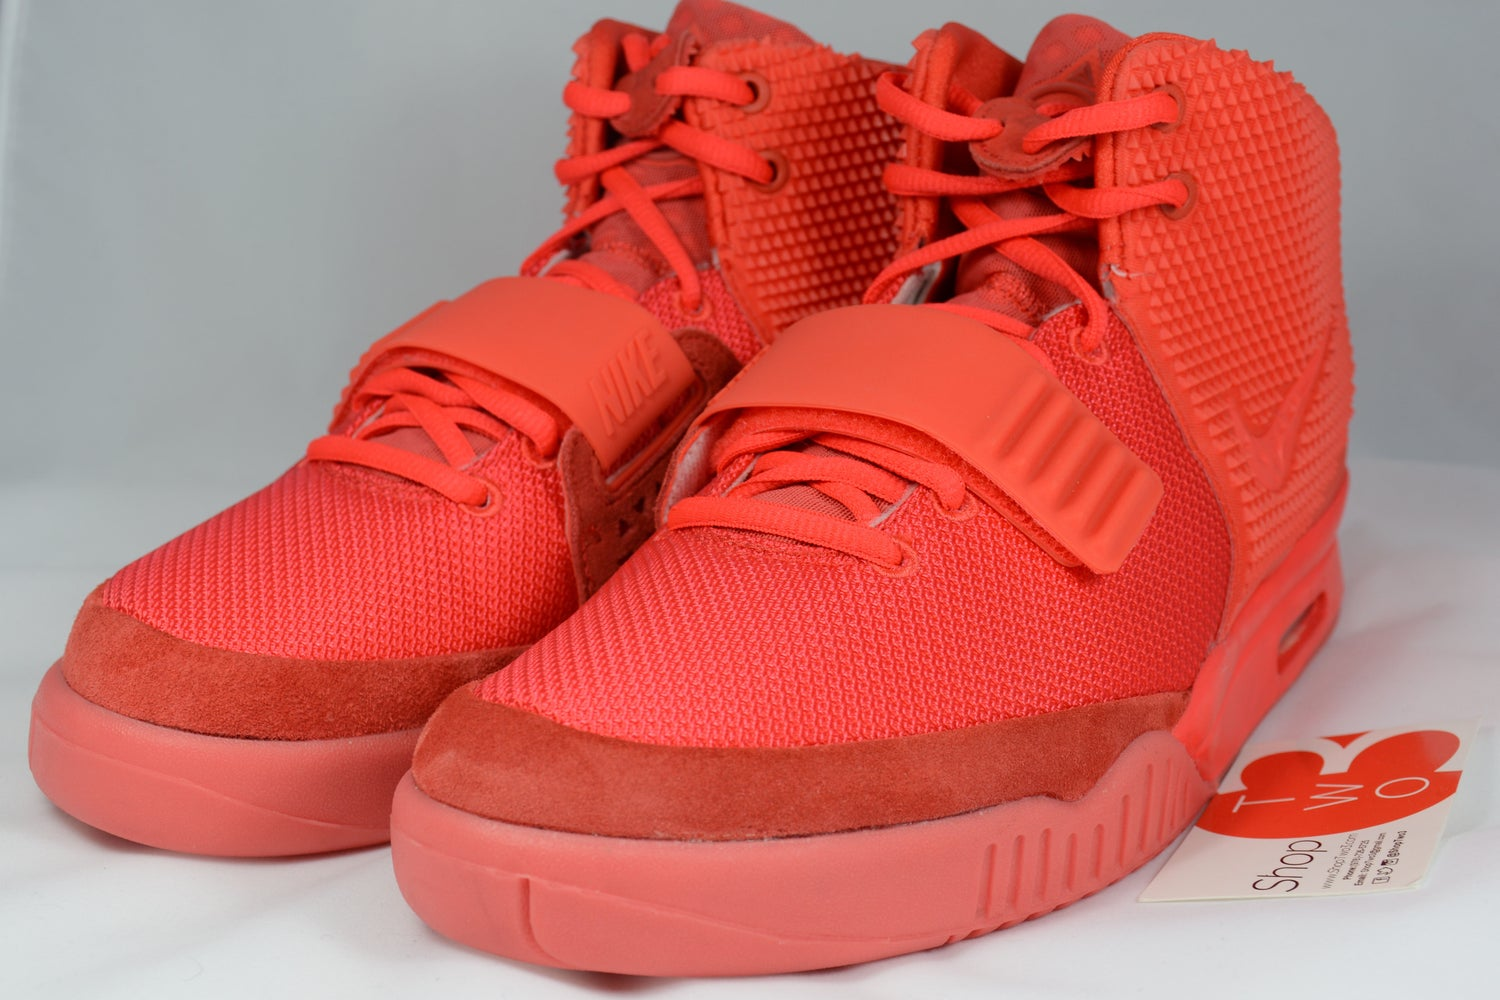 Image of Air Yeezy 2 Red October